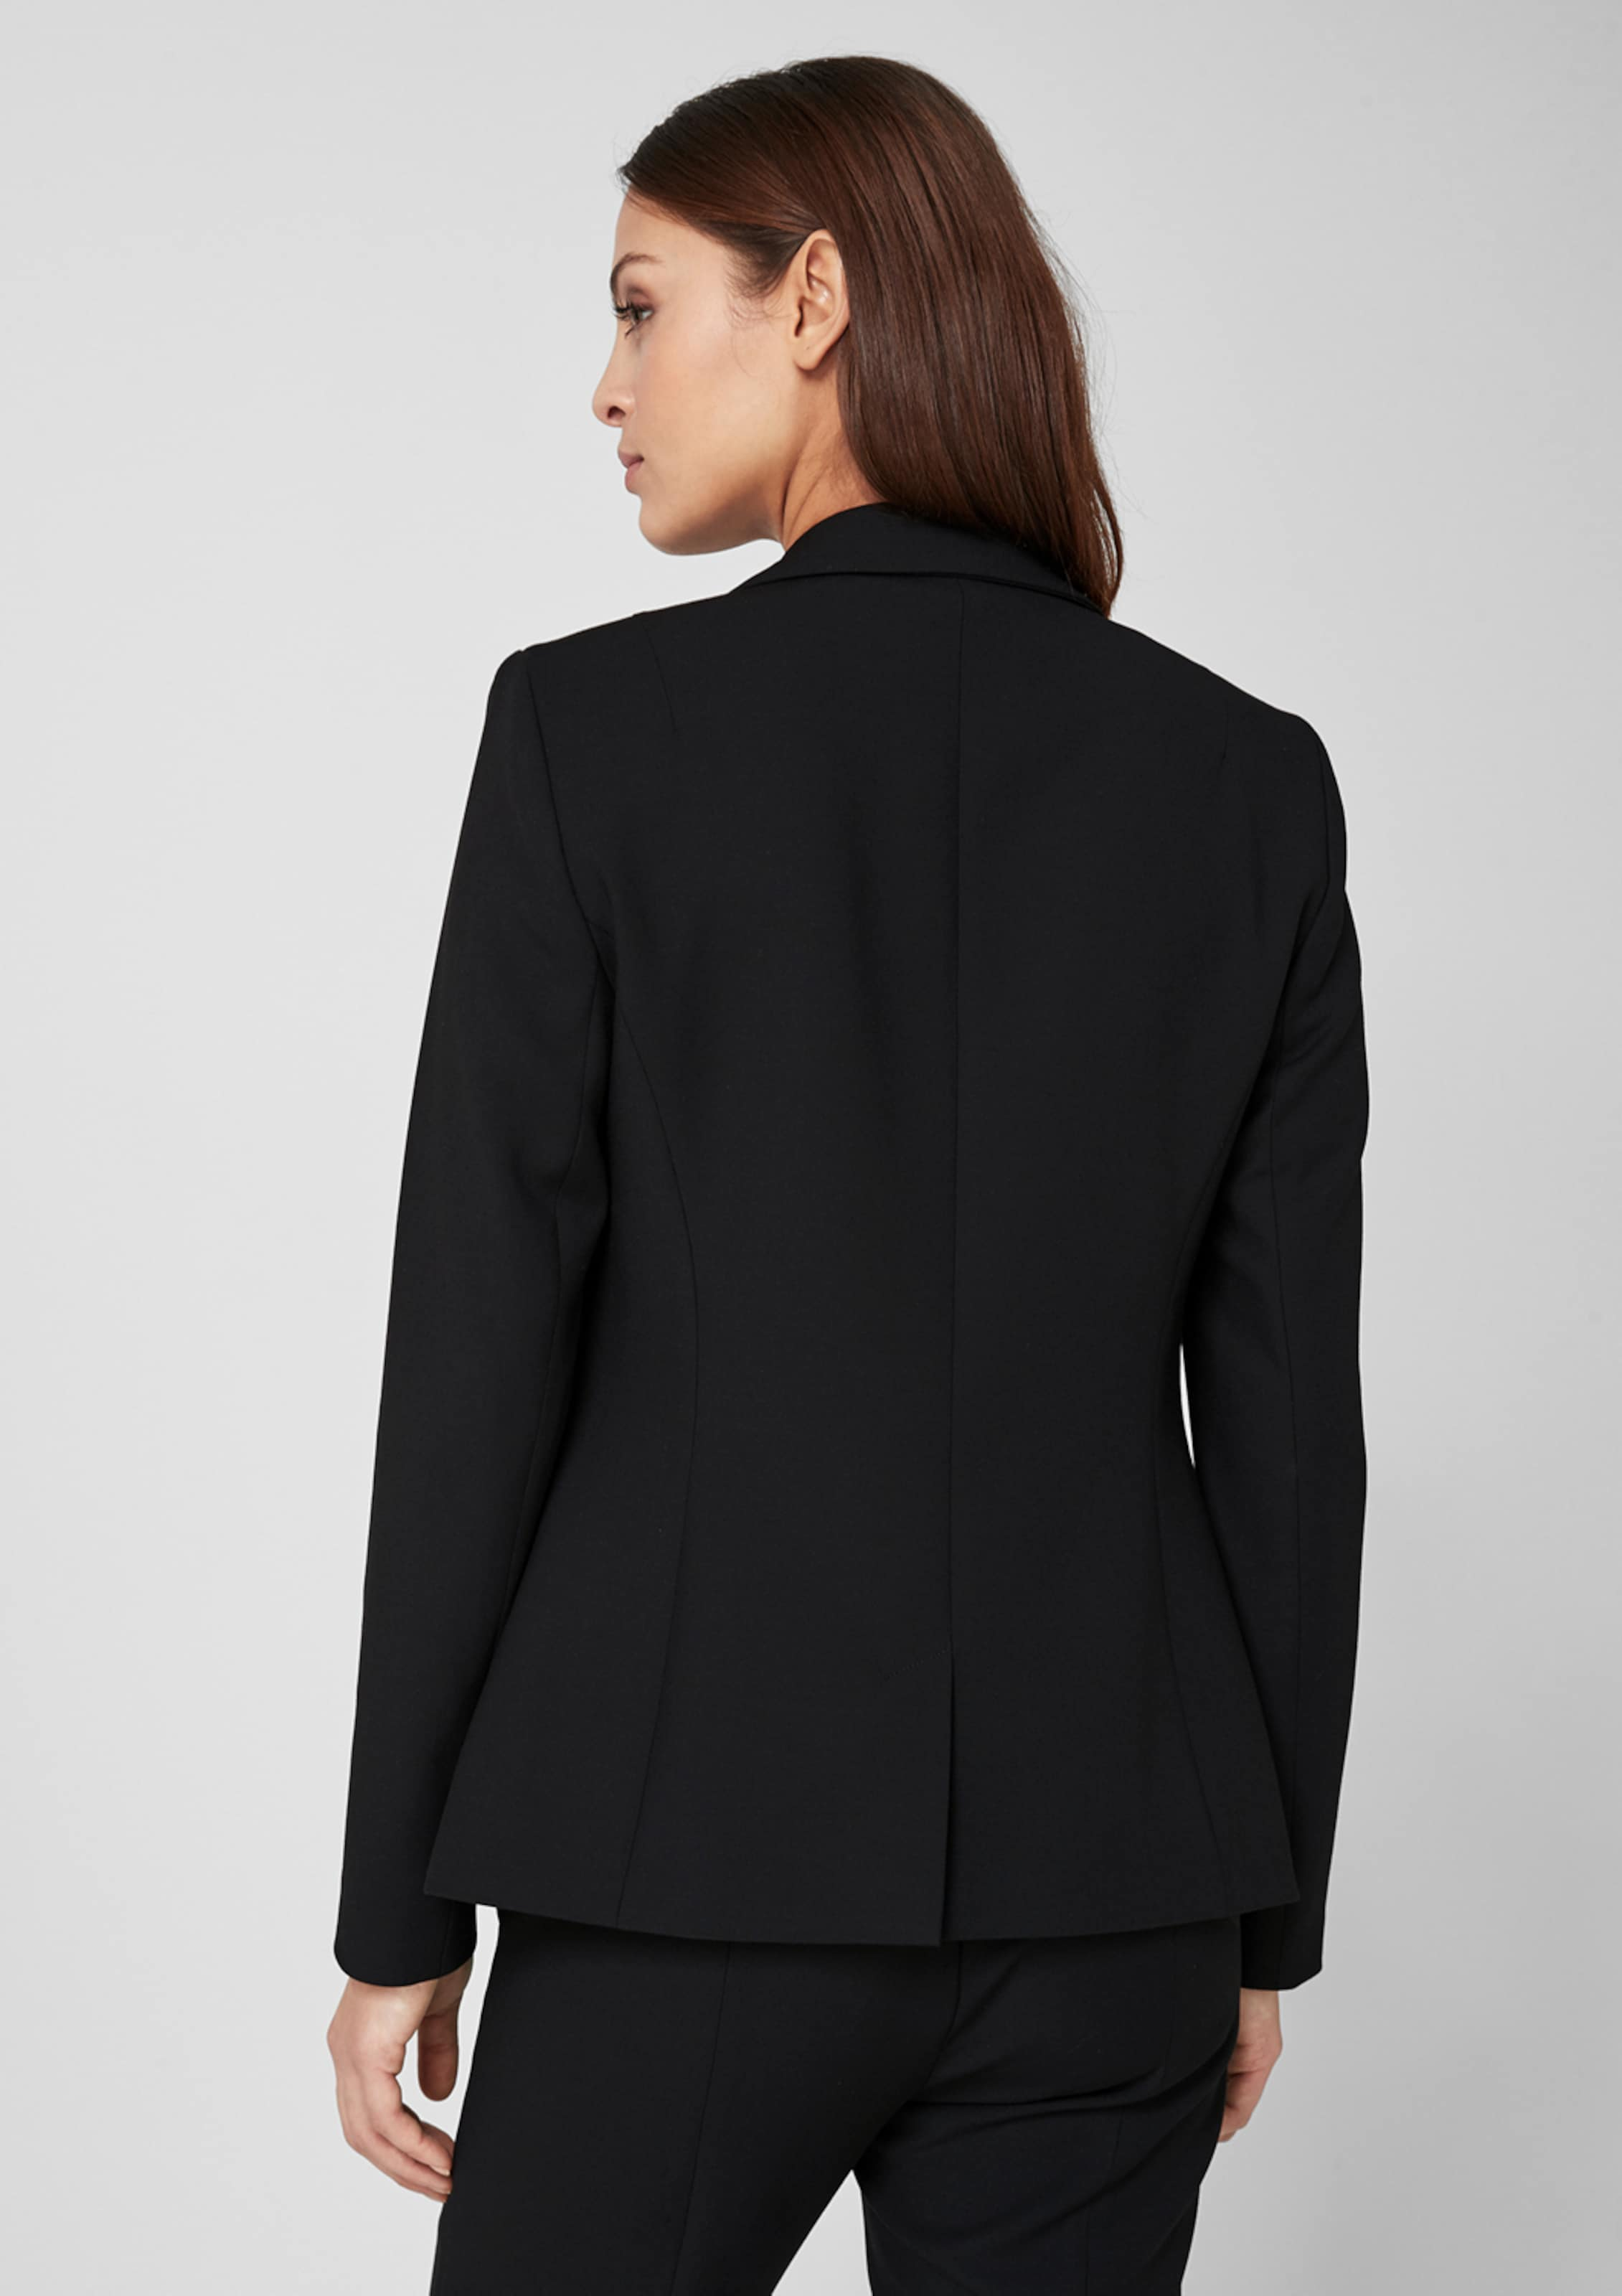 S Black oliver Schwarz In Label Businessblazer sQtdohrBCx